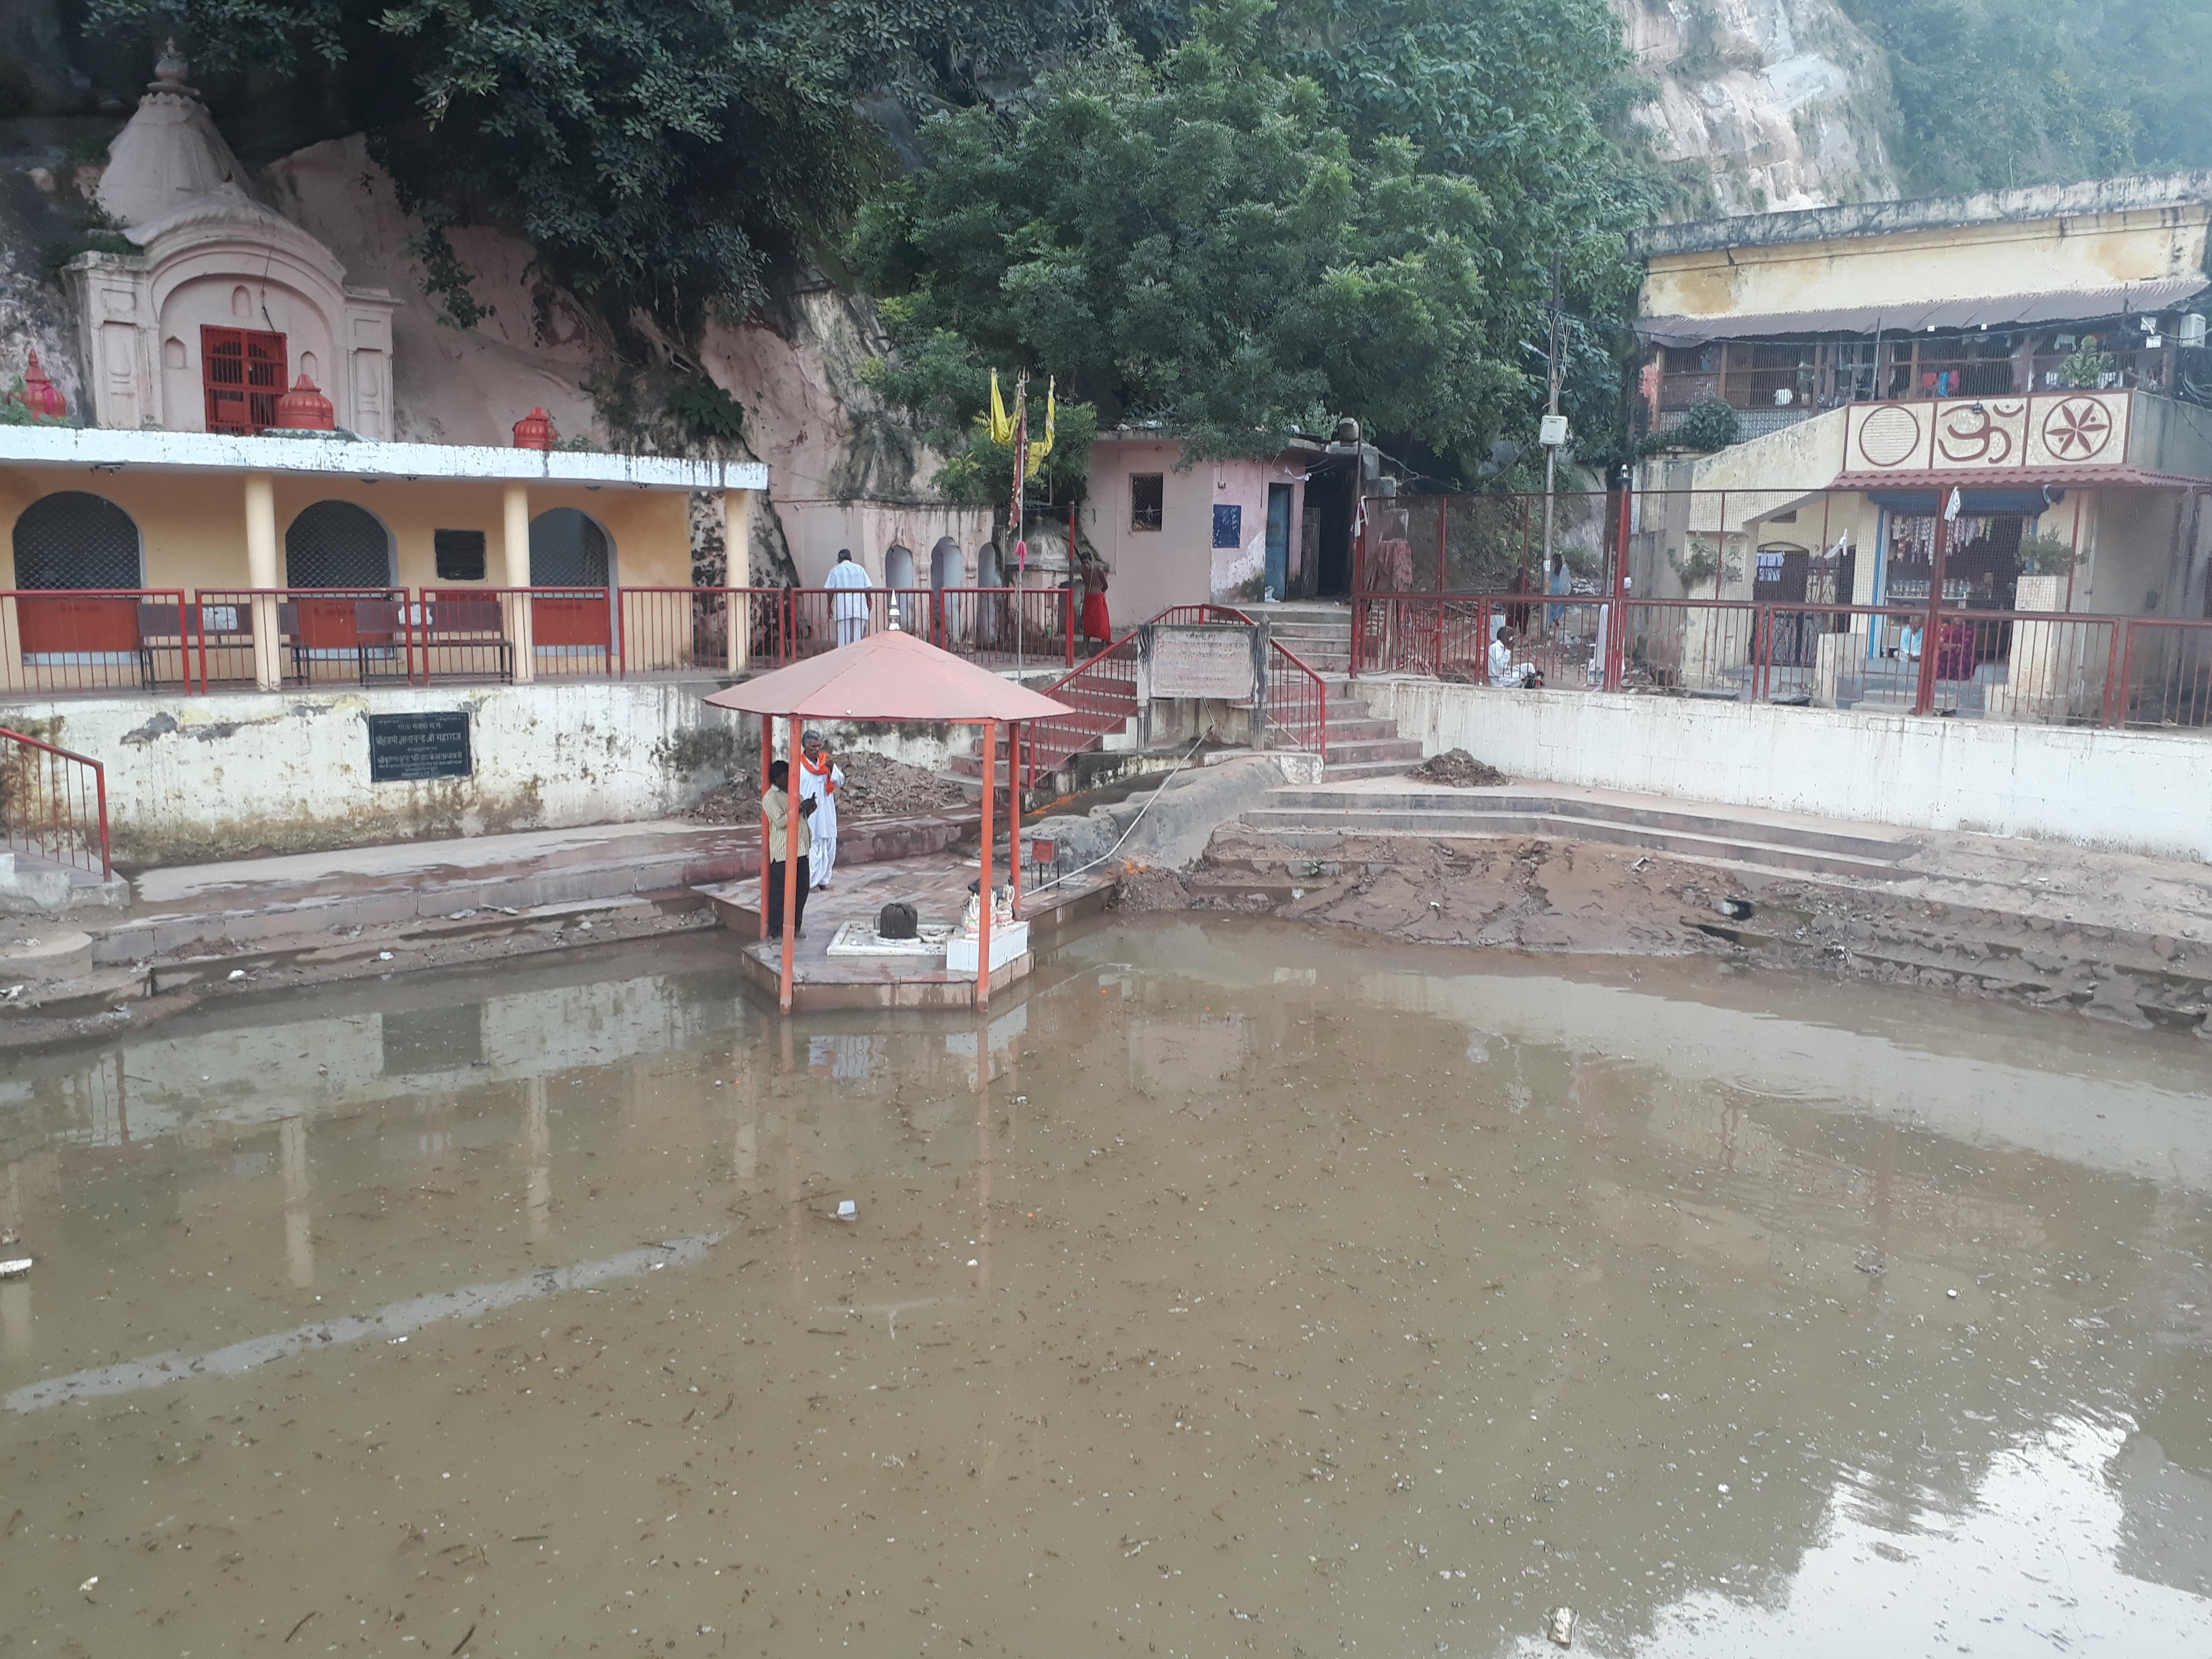 Bhimgoda Tank (5th Place to Visit in Haridwar)